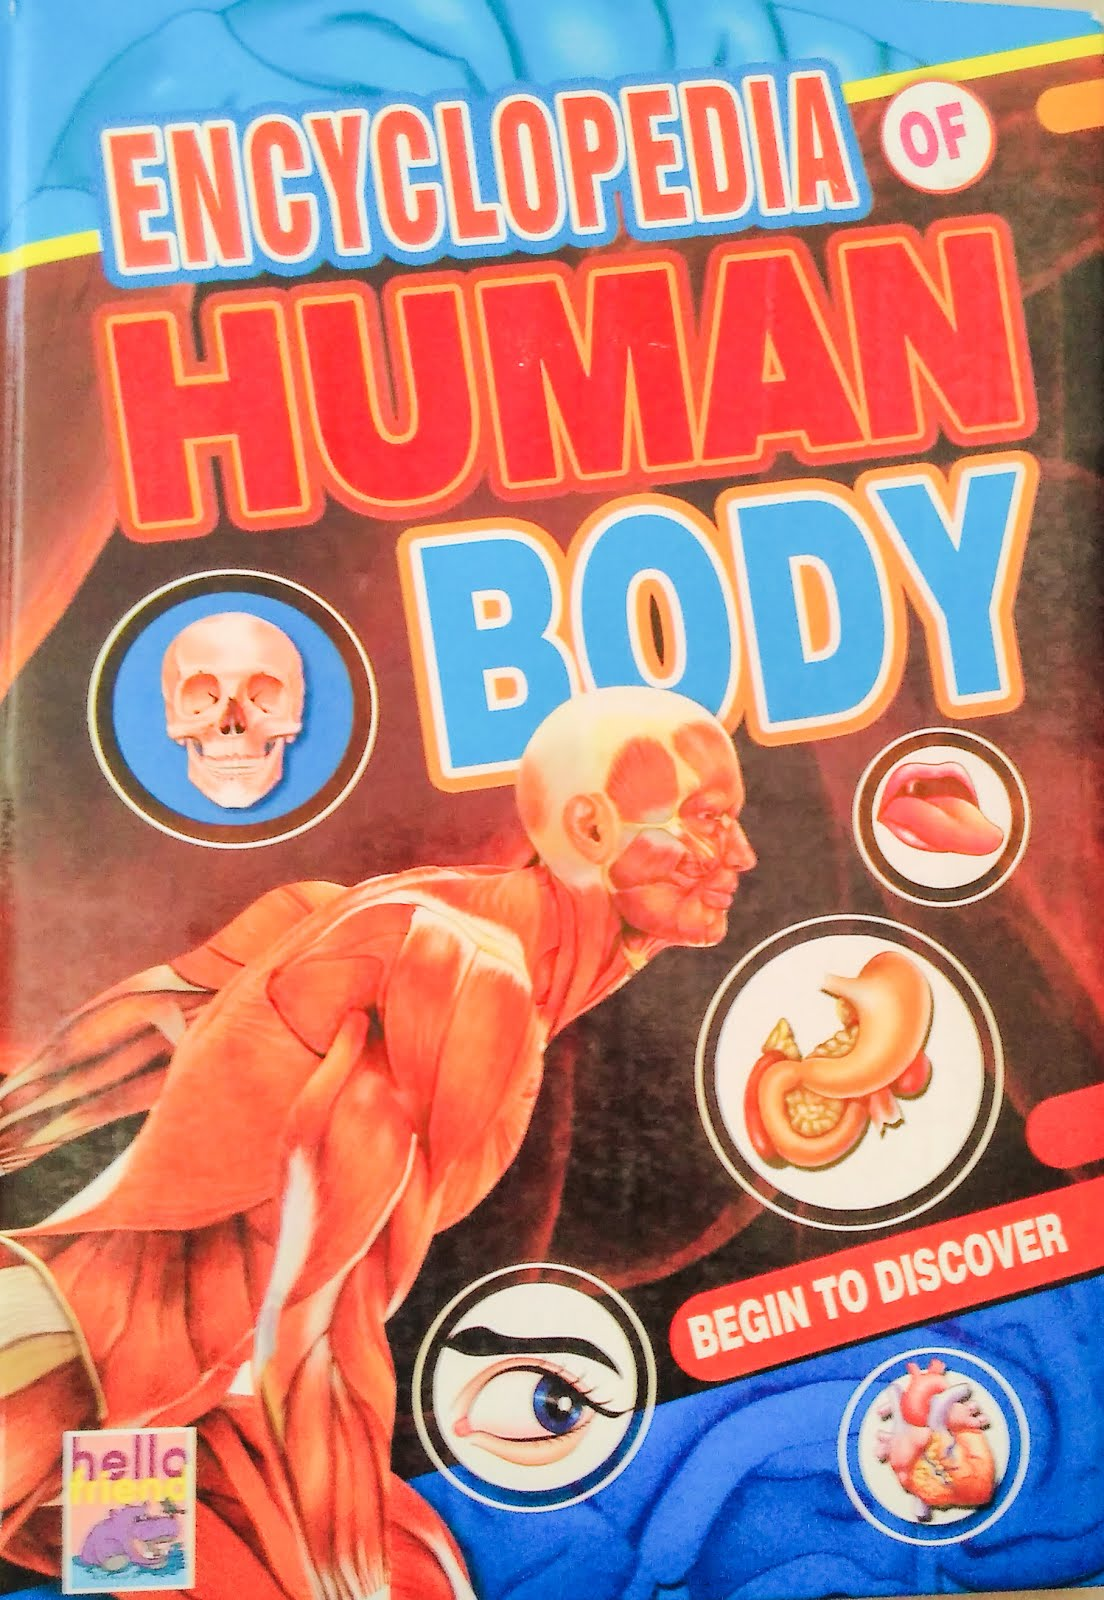 Best Encyclopedia on Human Body